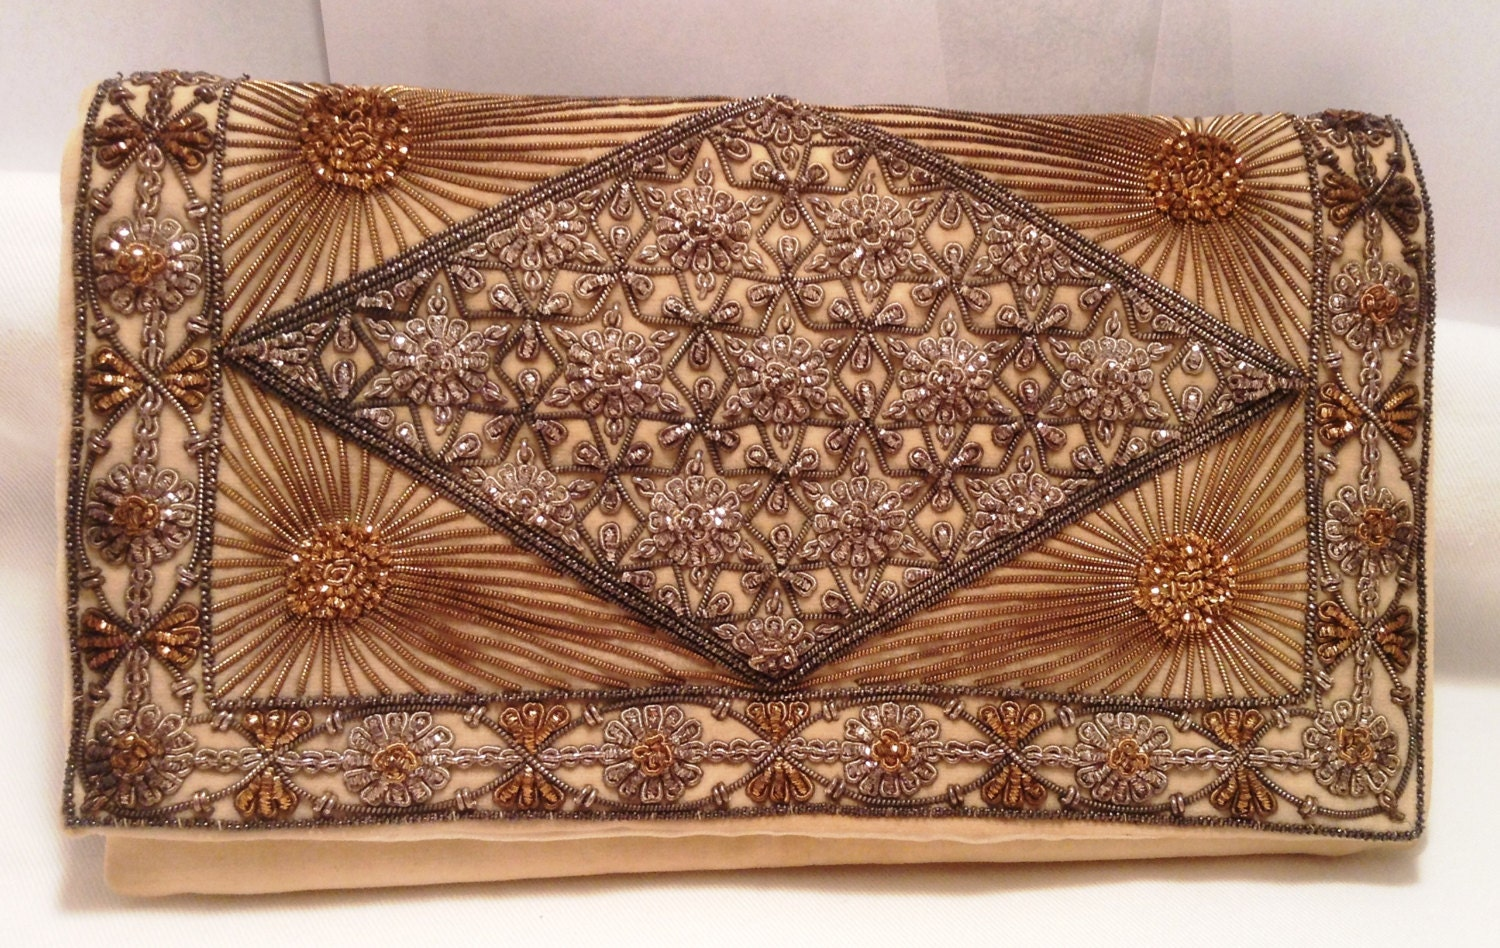 Vintage embroidered clutch purse baboo mull co